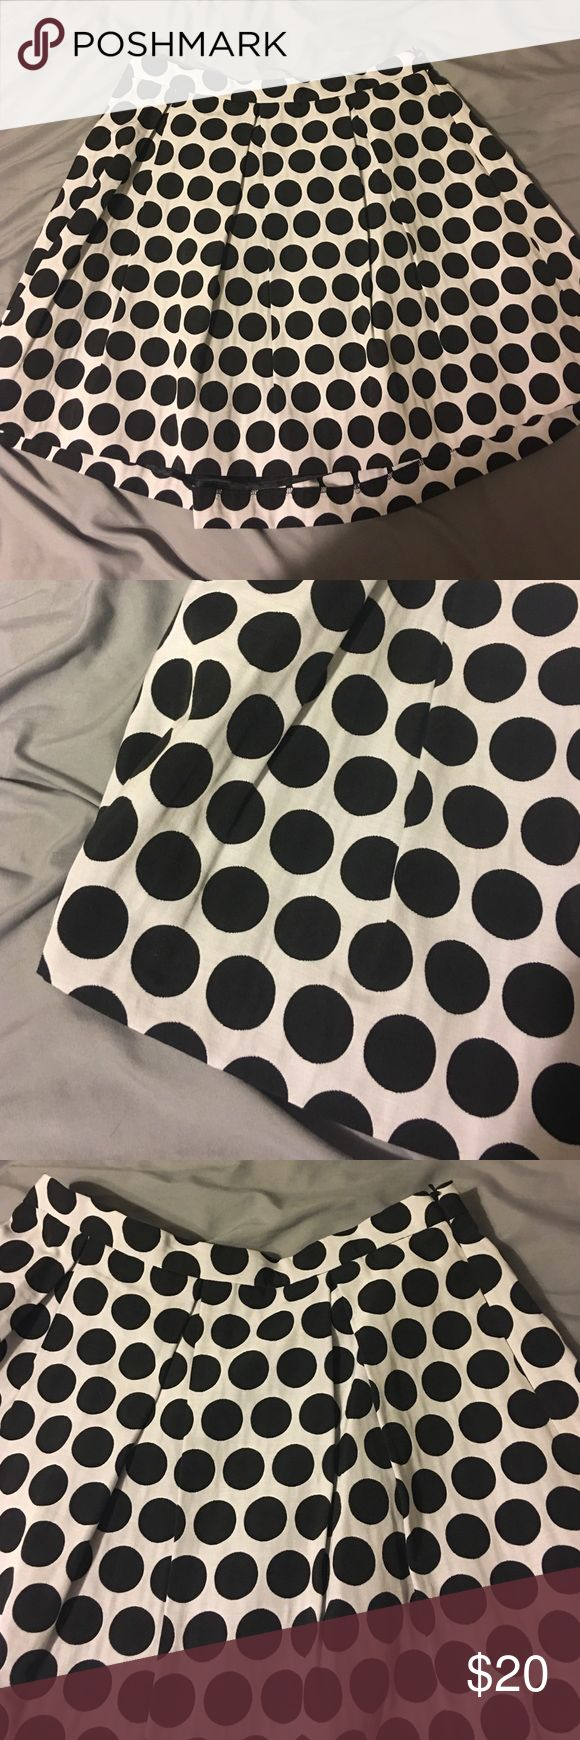 Like New French Connection skirt Black and white polka dot skirt - size 10- side zipped. French connection French Connection Skirts Midi